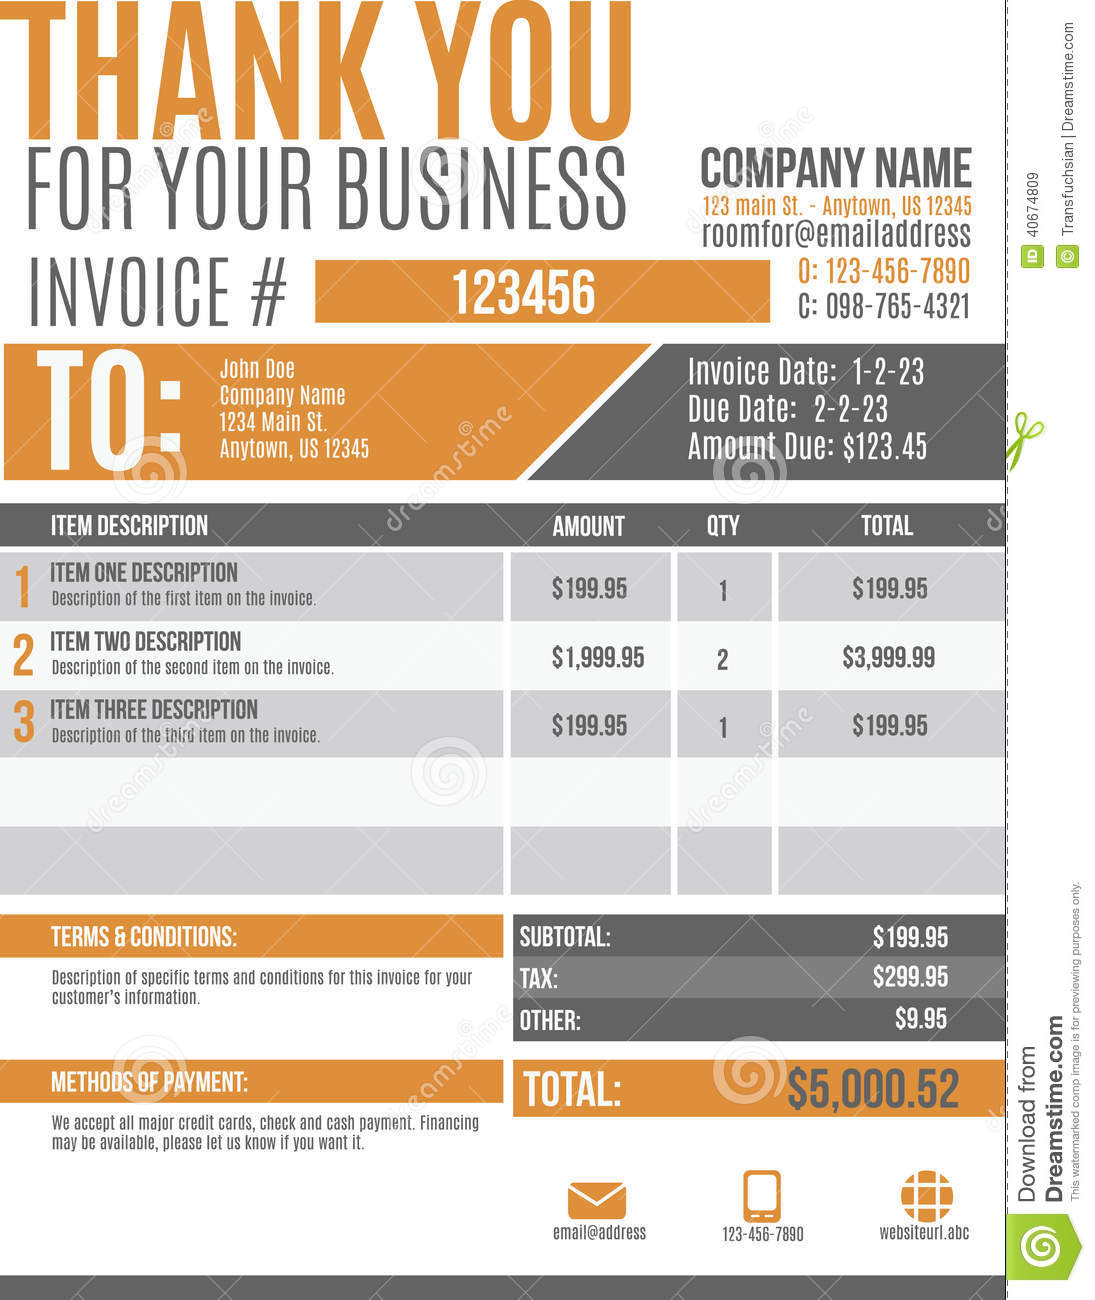 Fun Invoice Template Design Stock Vector Image 40674809